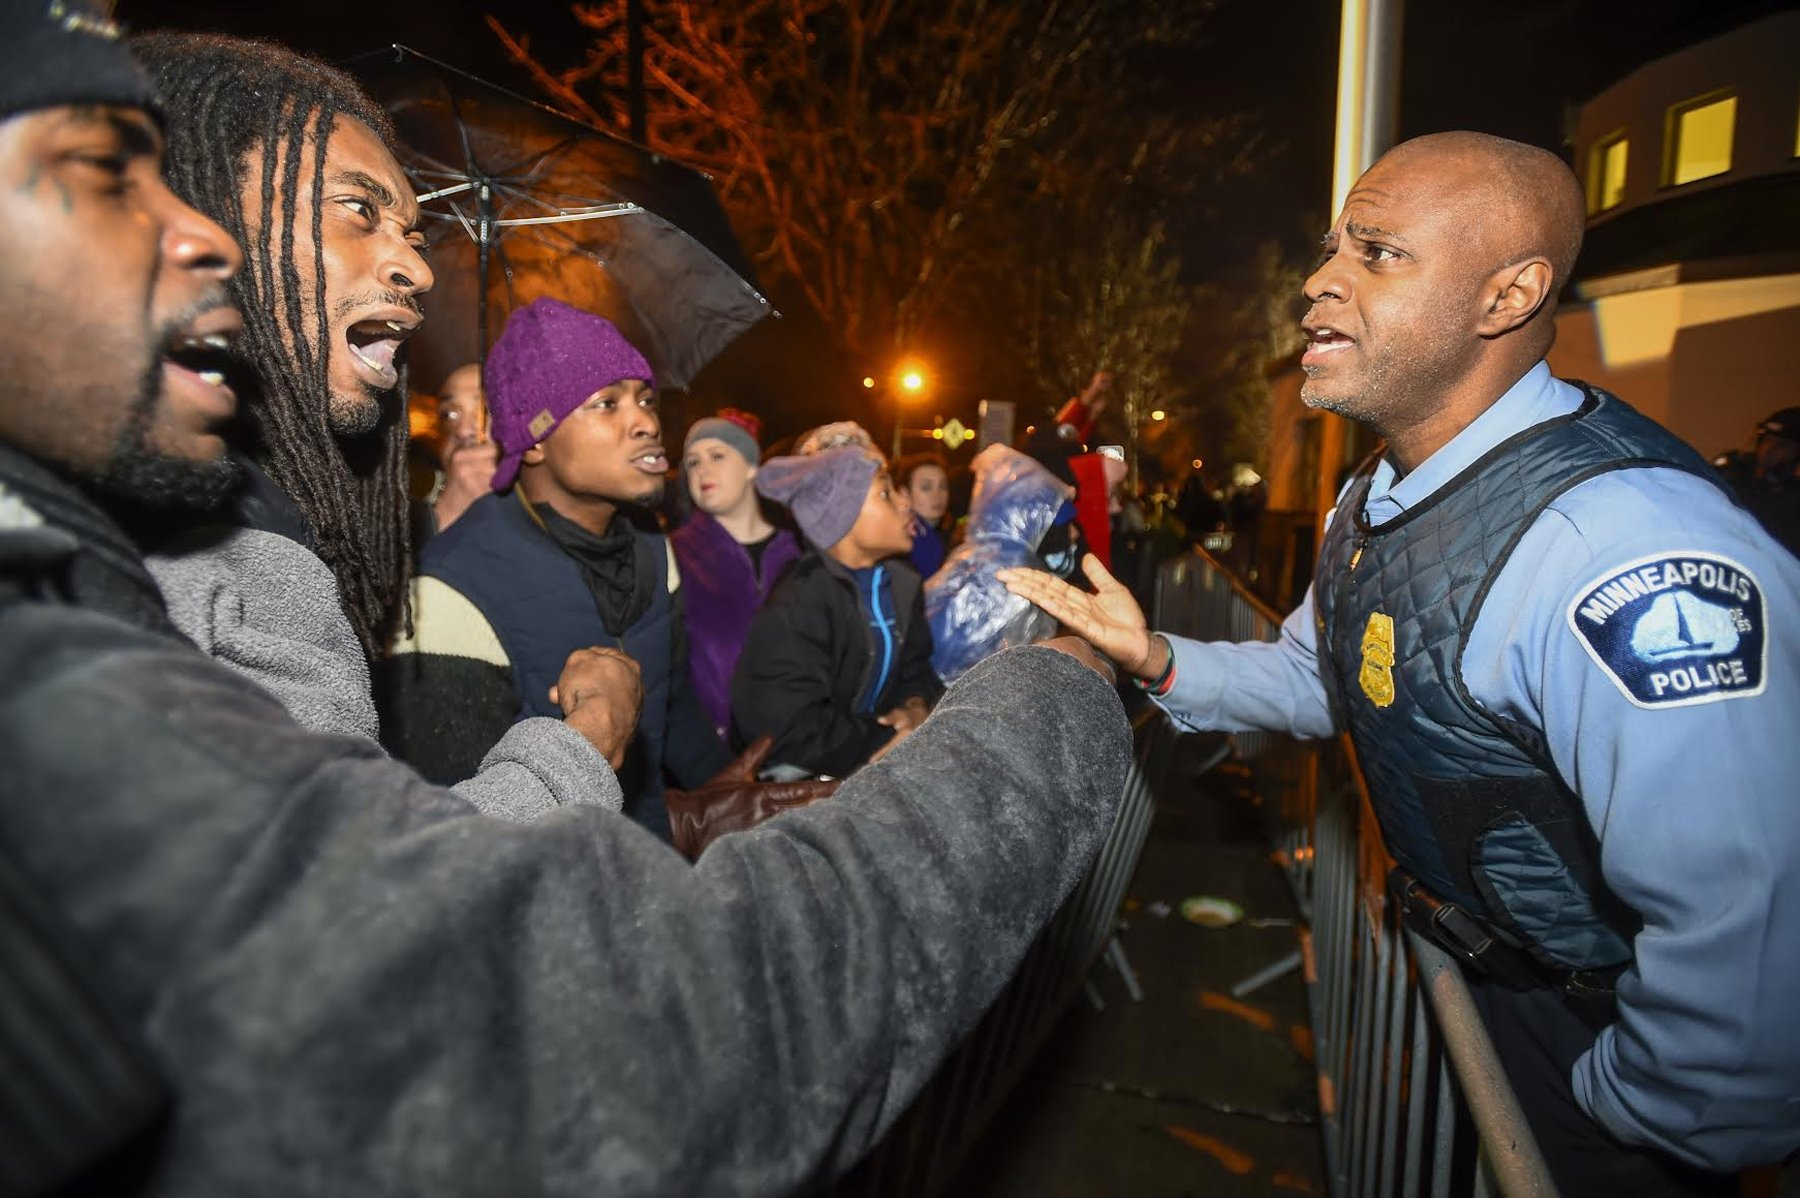 A police officer talks with demonstrators in front of a north Minneapolis police precinct during a protest in response of Sunday's shooting death of Jamar Clark by police officers in Minneapolis on Nov. 18, 2015.